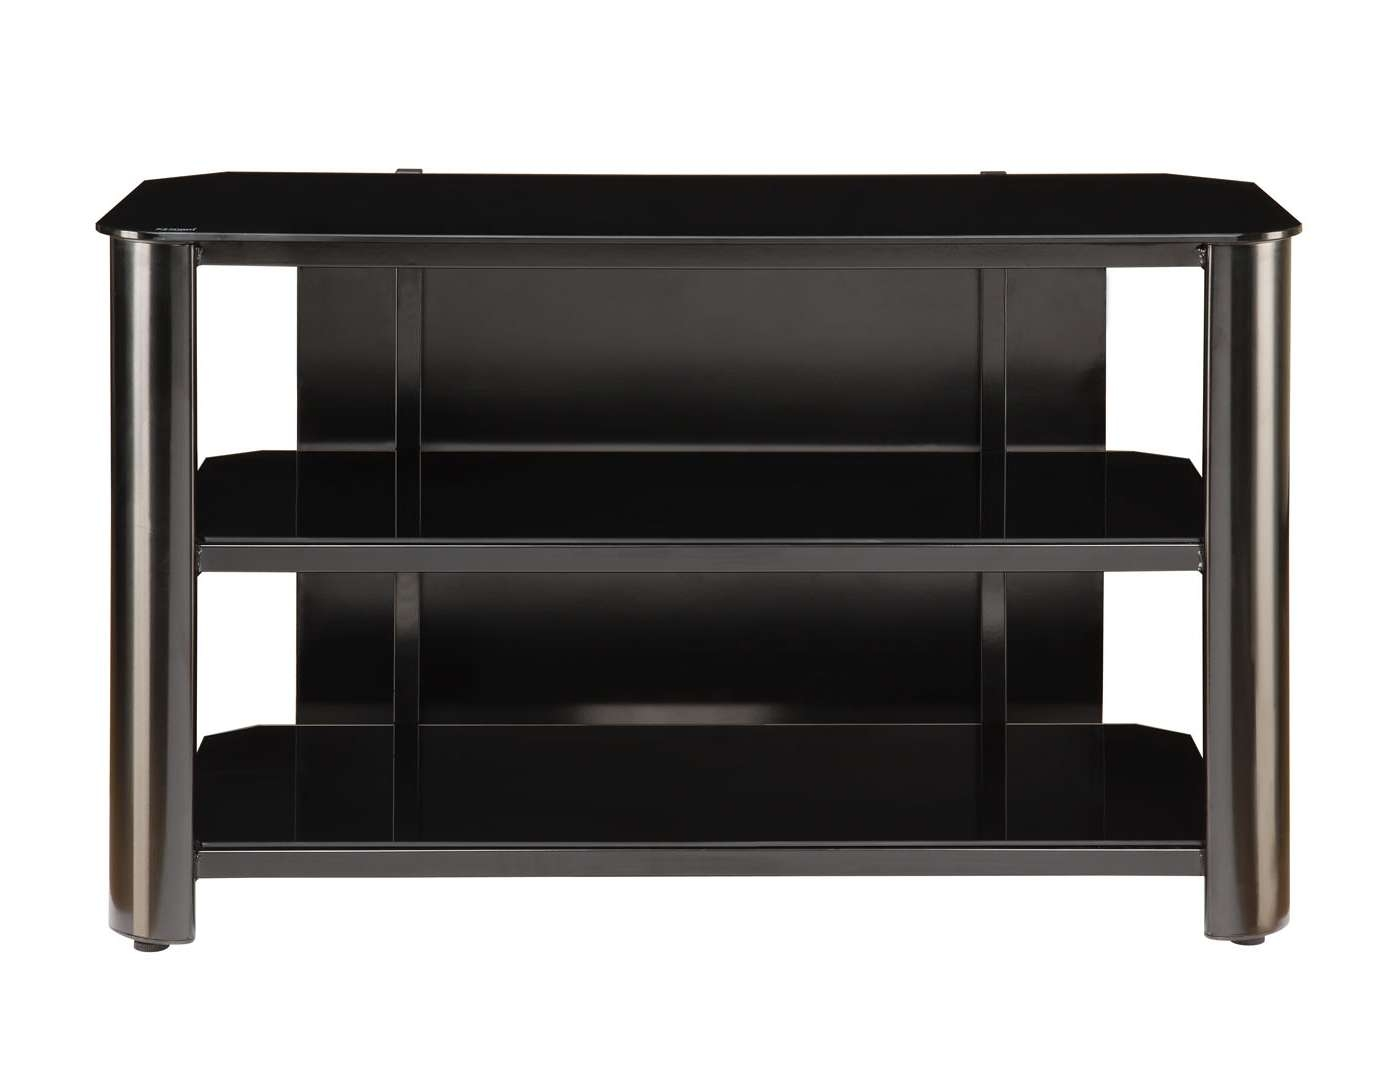 Innovex Black Glass Tv Stand Tpt42g29 Intended For Black Glass Tv Stands (View 3 of 15)